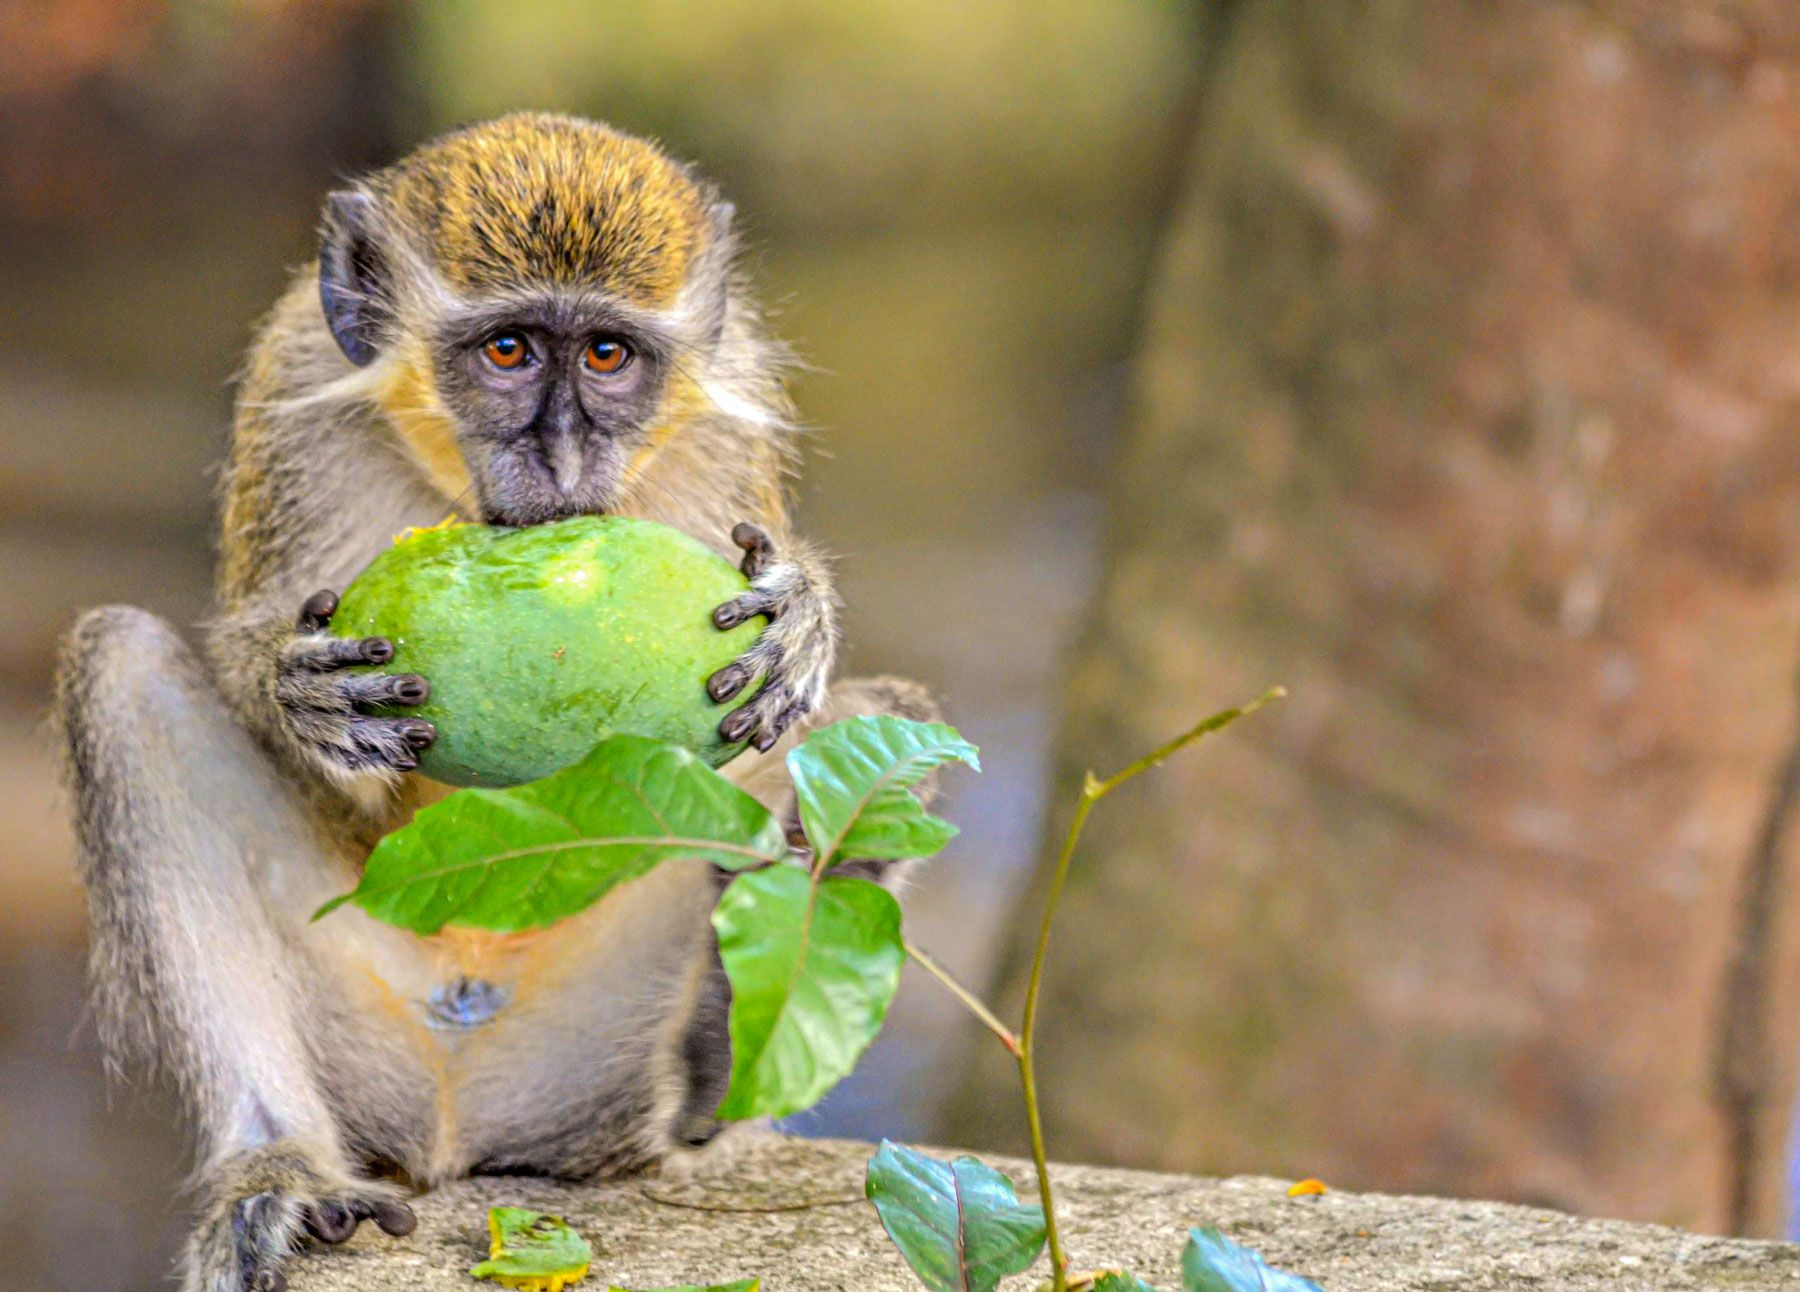 barbados green monkey eating fruit